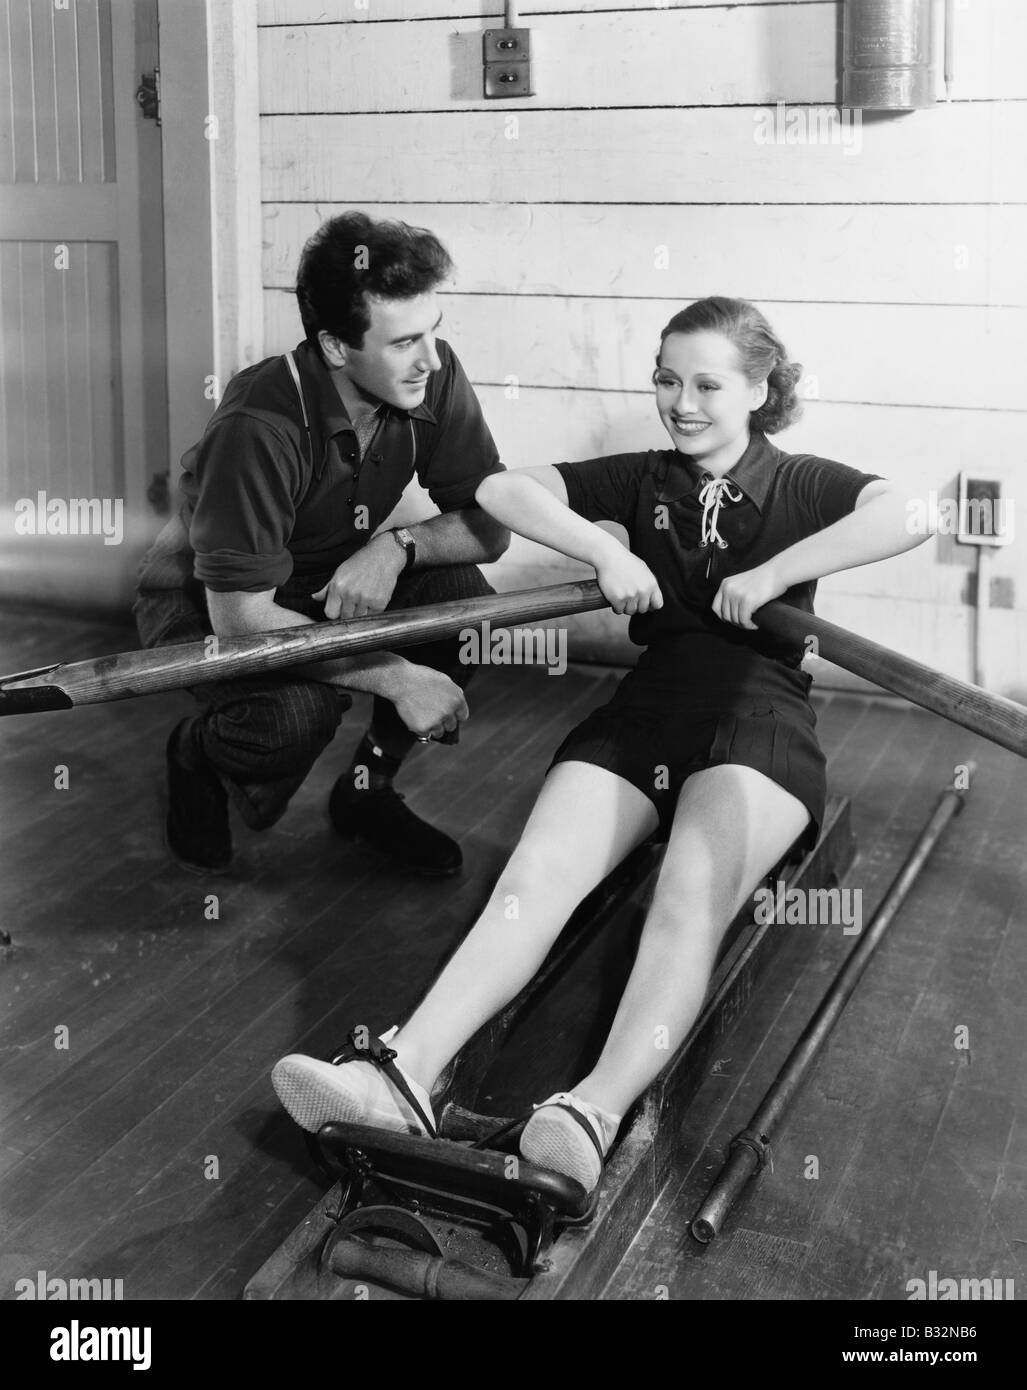 Man with woman using rowing machine - Stock Image